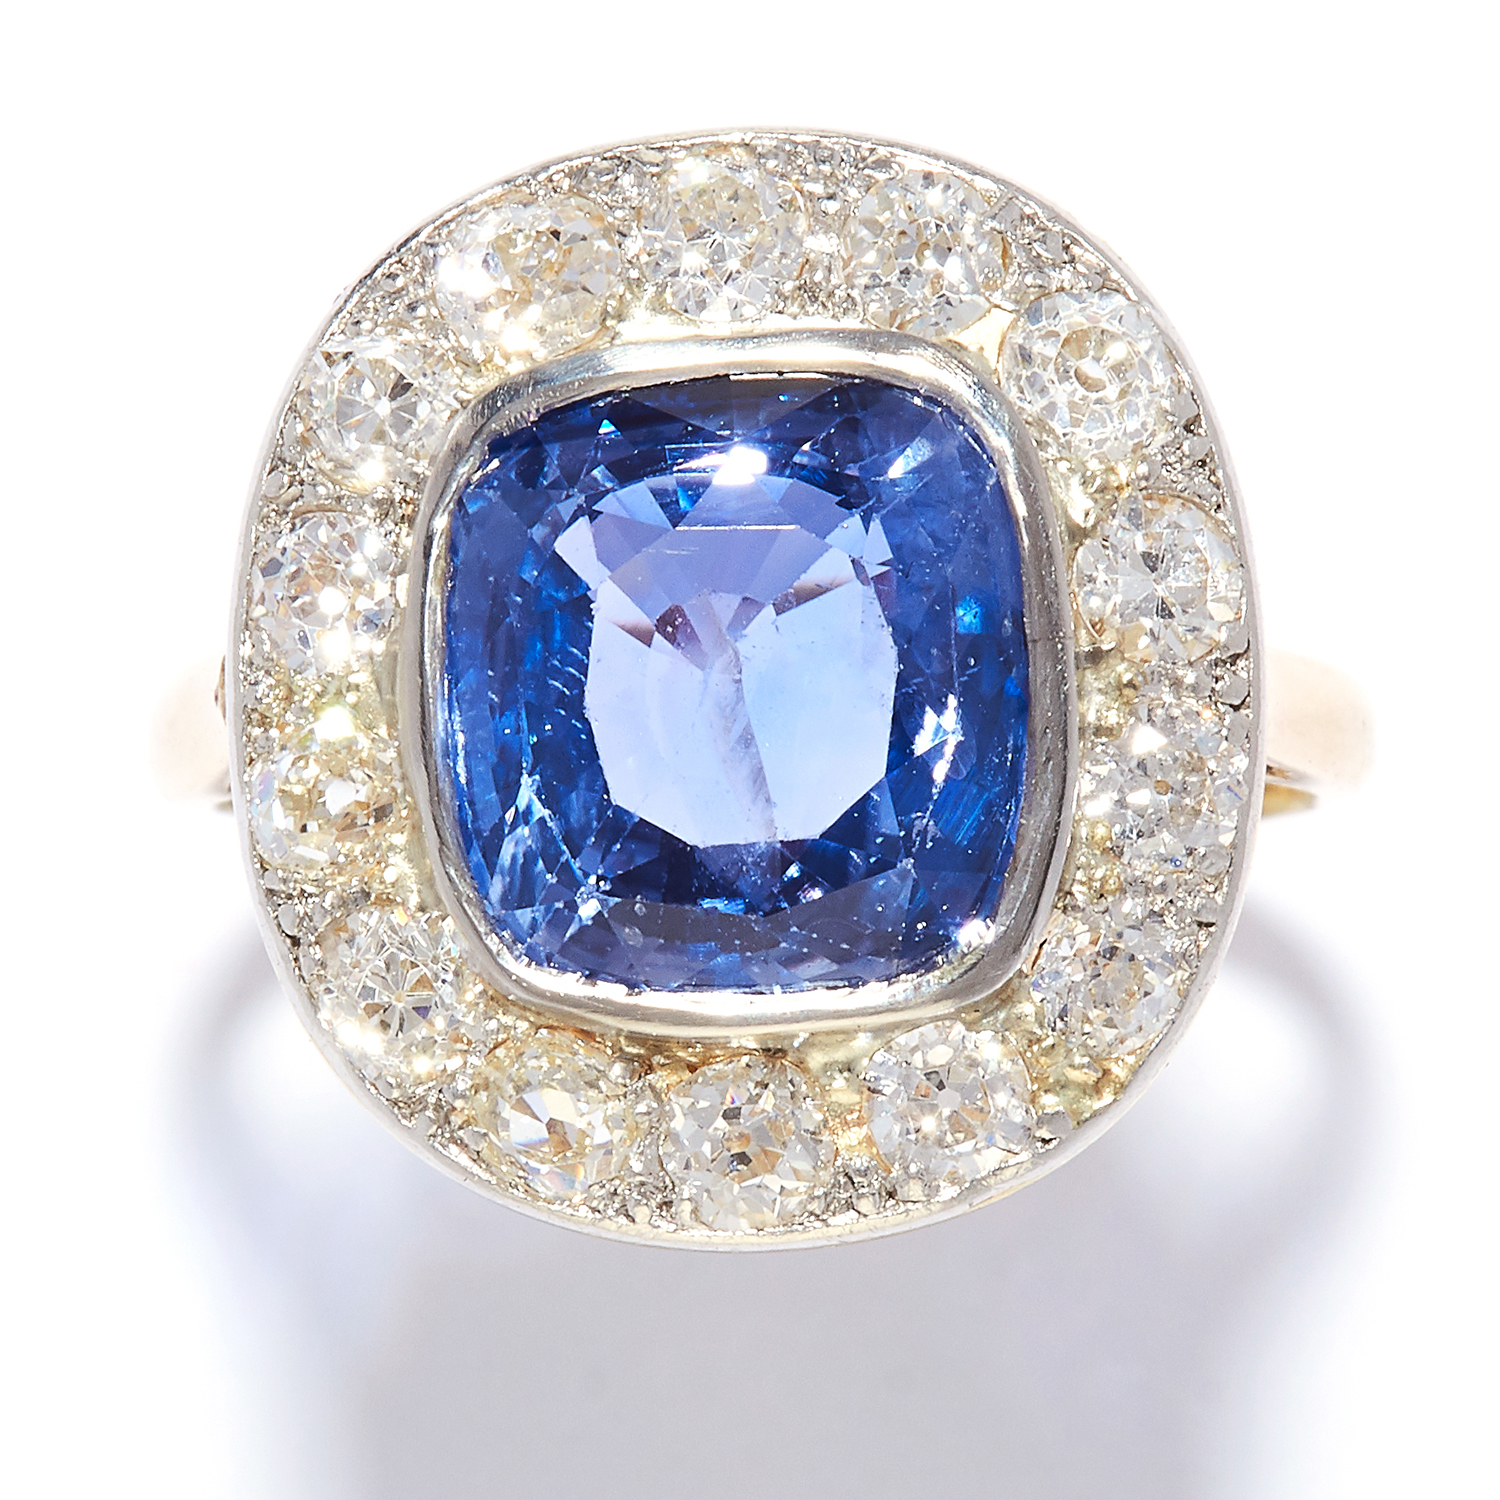 Los 21 - 4.65 CARAT NO HEAT SAPPHIRE AND DIAMOND CLUSTER RING in yellow gold, set with a 4.65 carat cushion